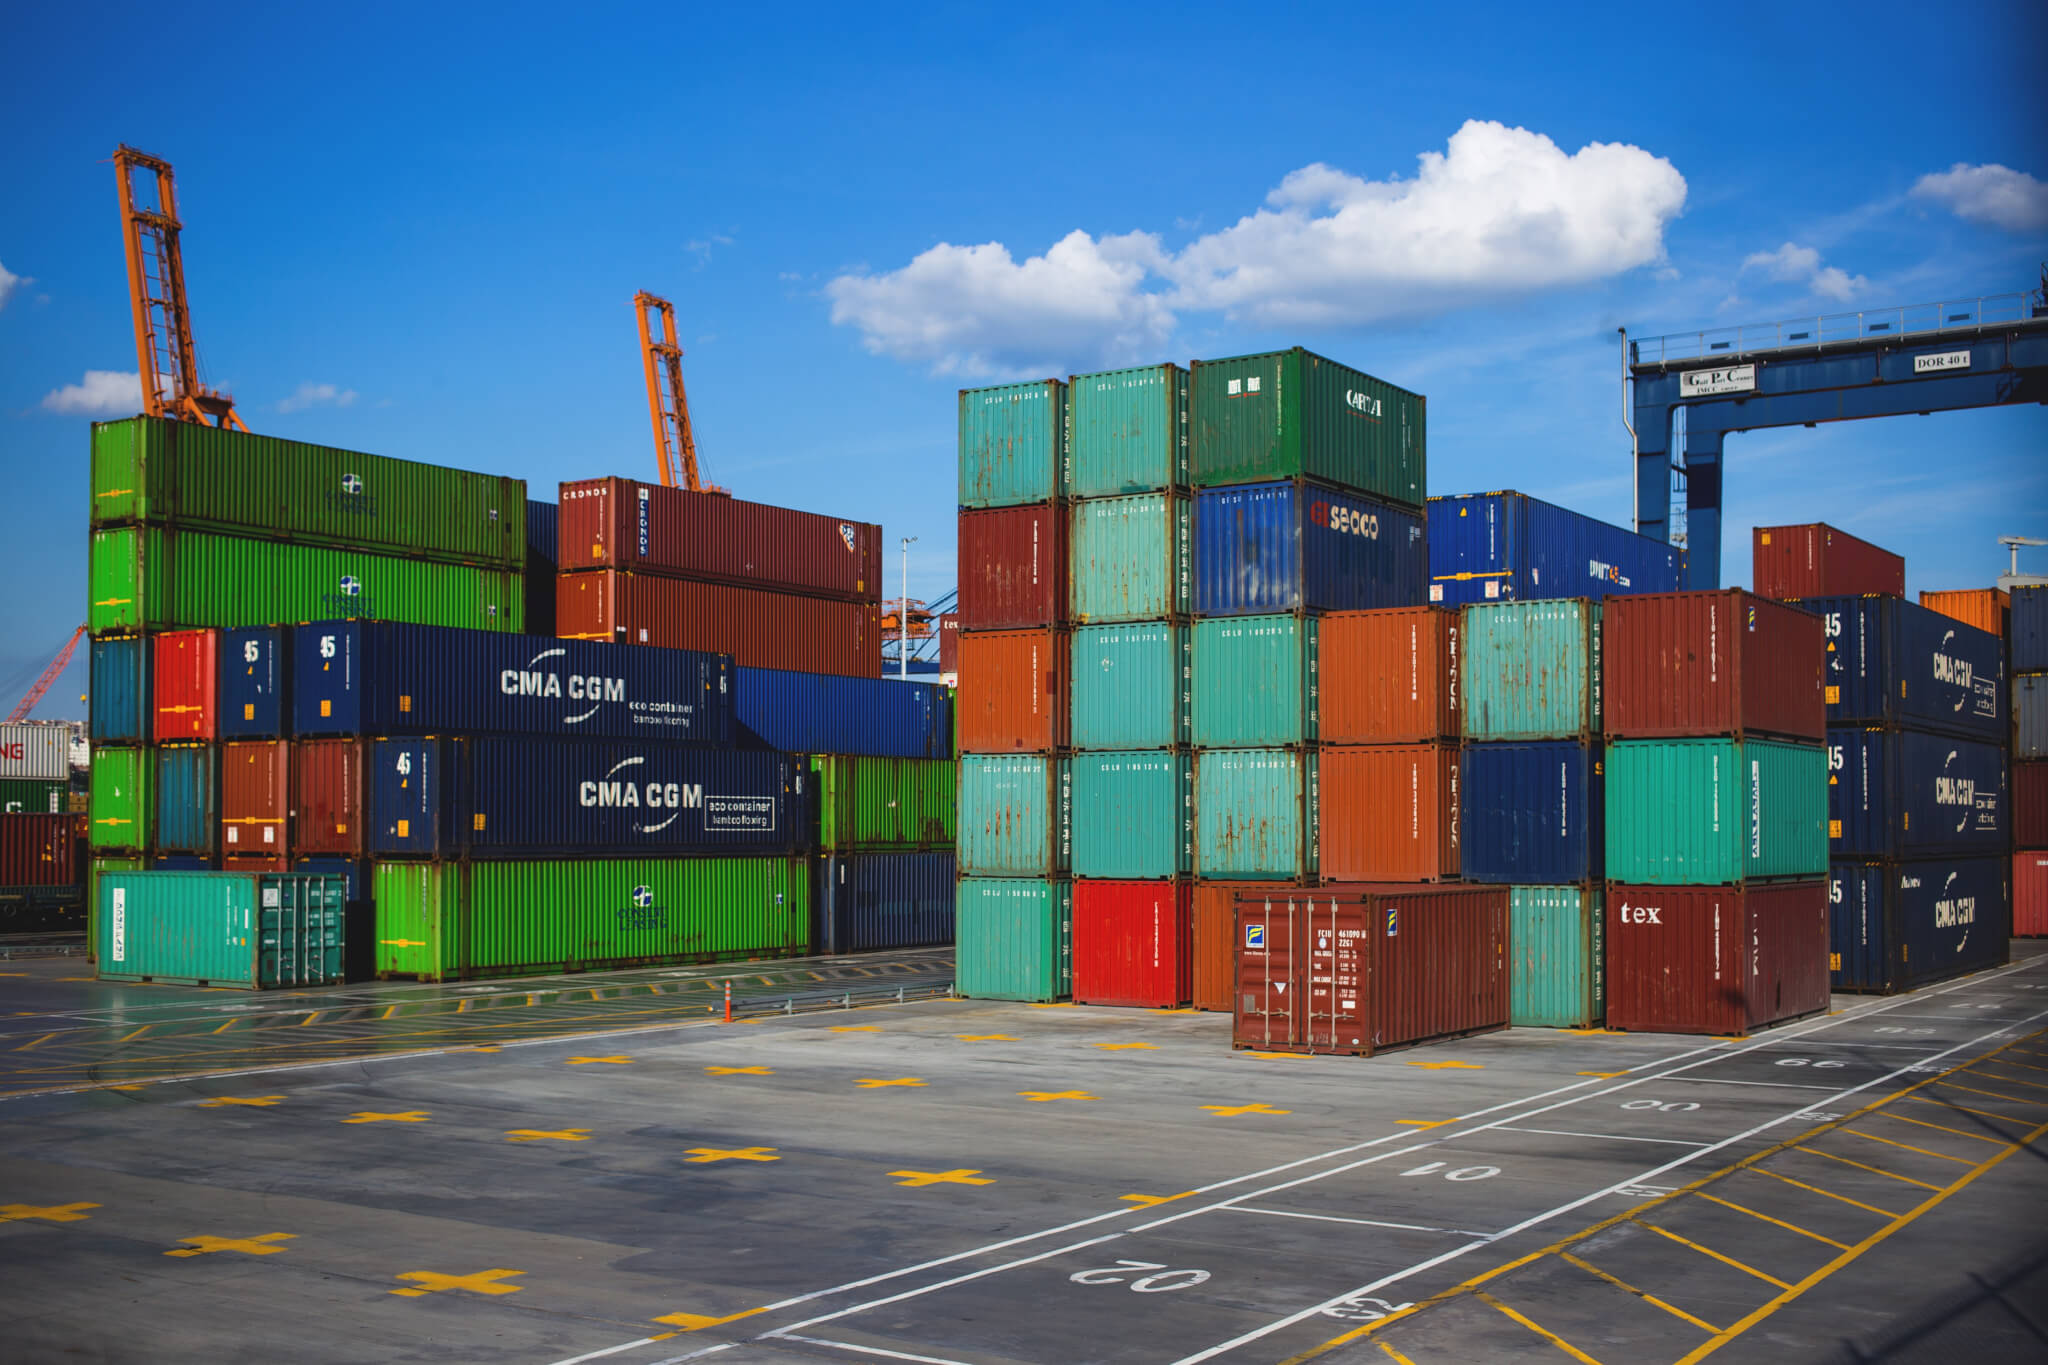 Shipping Containers - Trade European Union